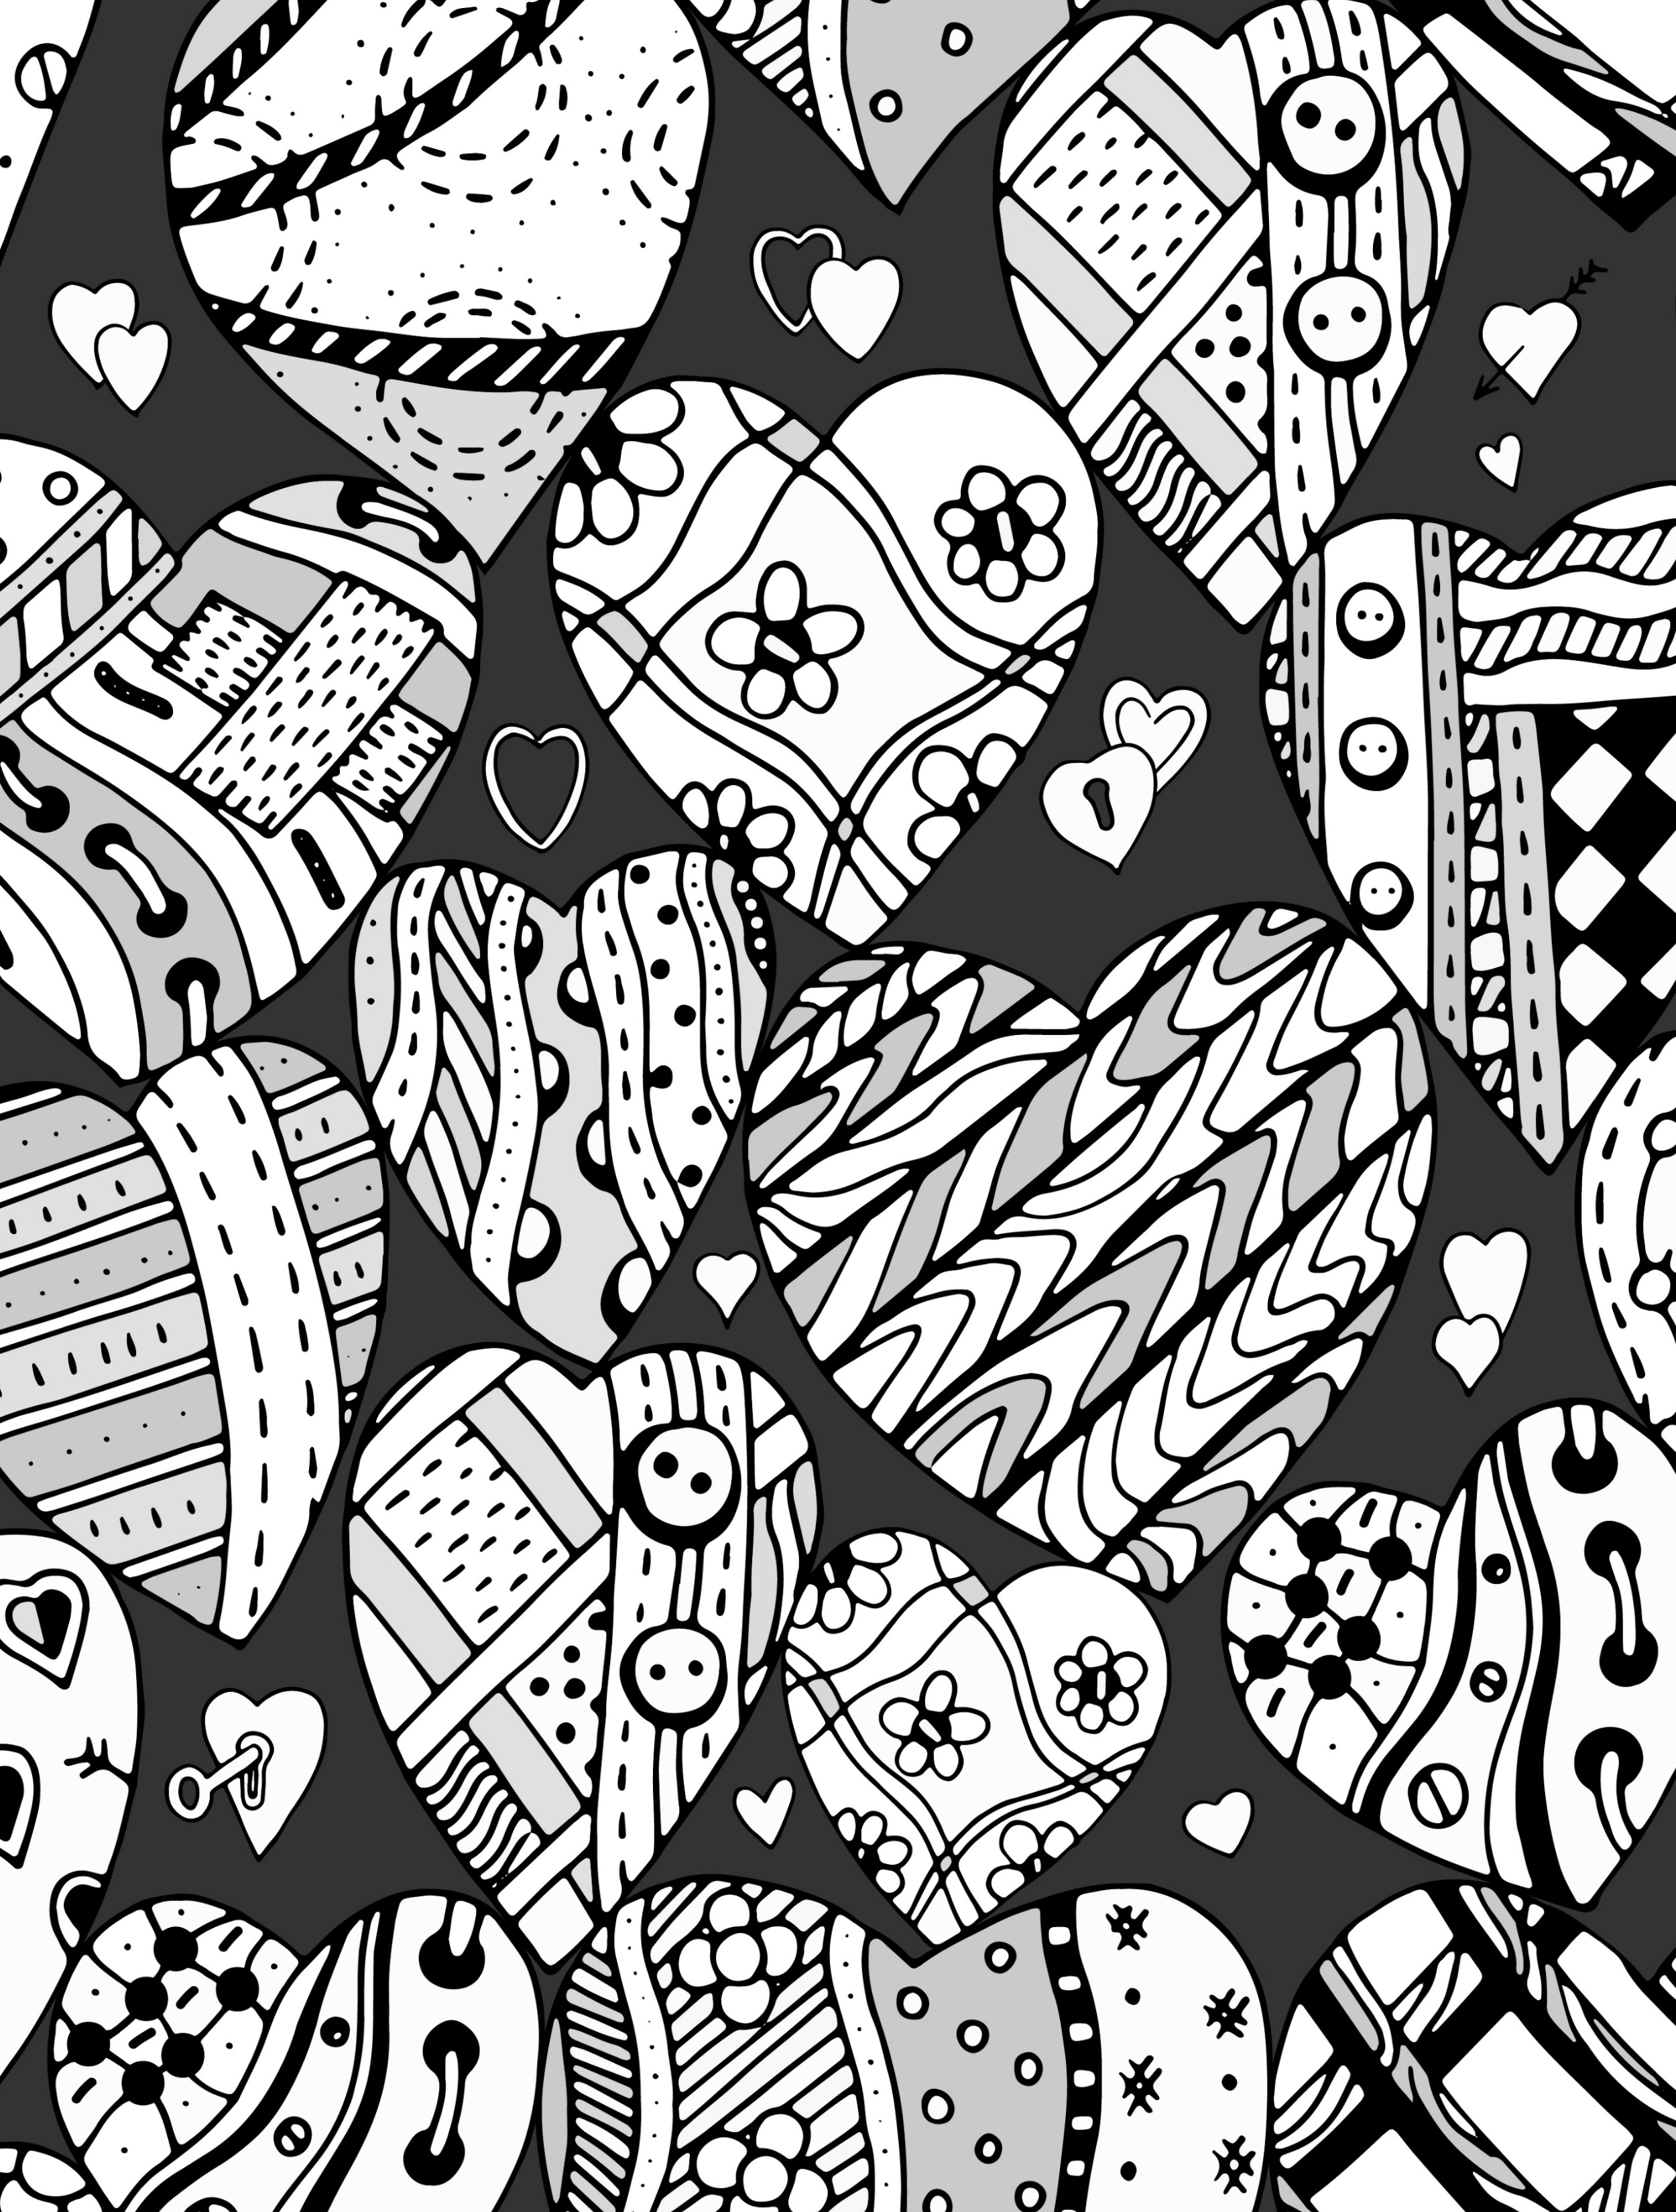 20 Free Printable Valentines Adult Coloring Pages Nerdy Mamma to Print Of I Love You Free Valentines S0189 Coloring Pages Printable Collection